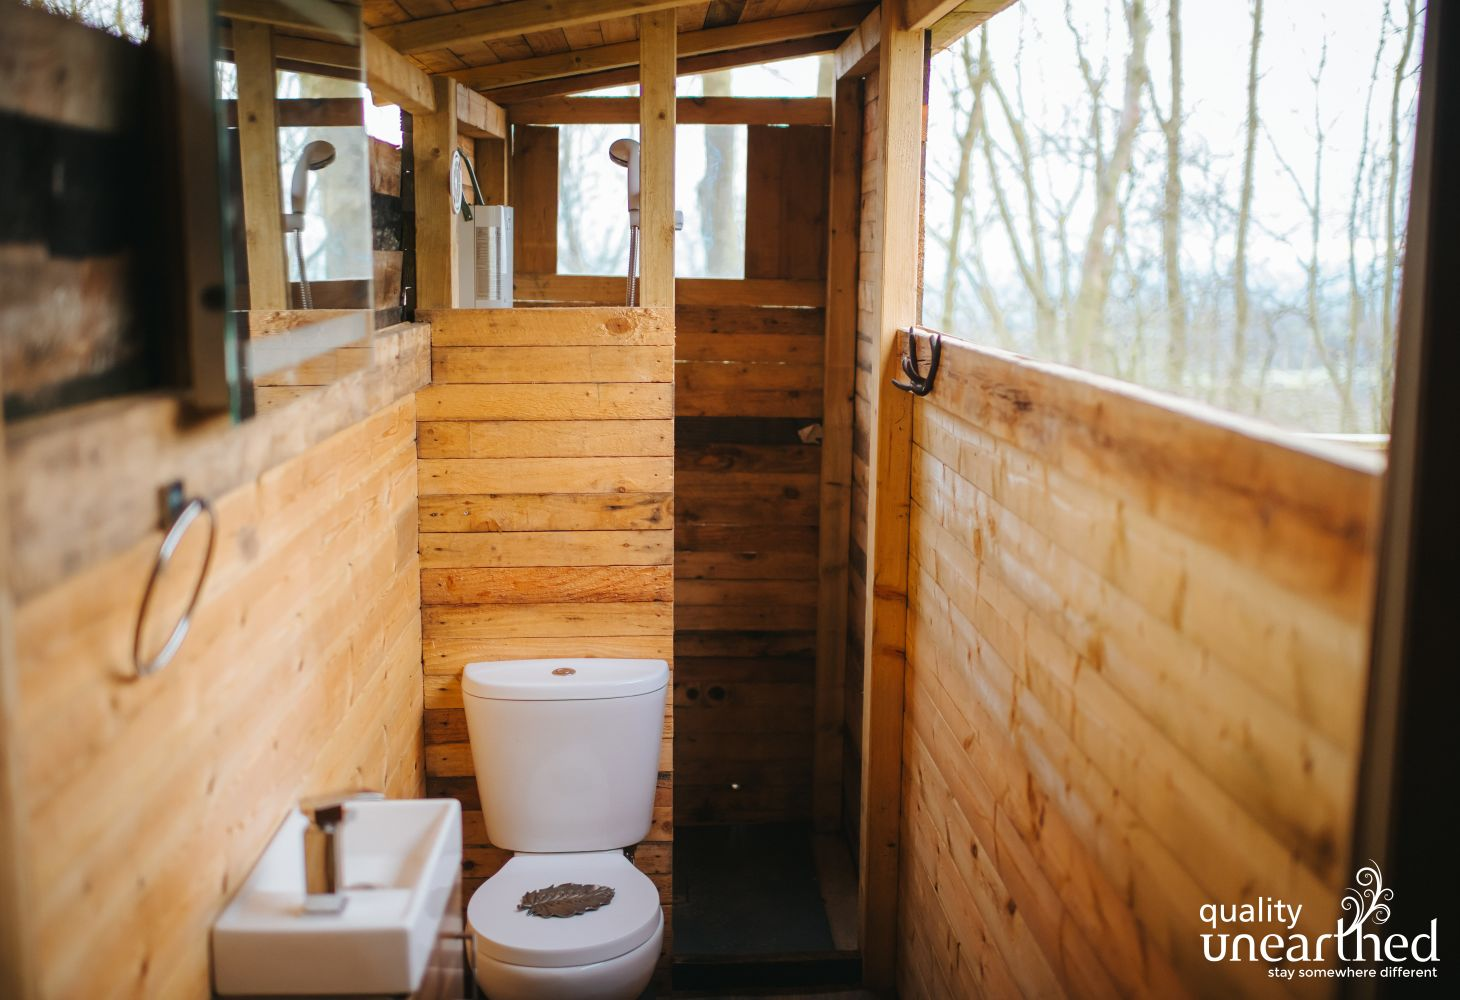 The geodome has a flushing WC and hot water shower